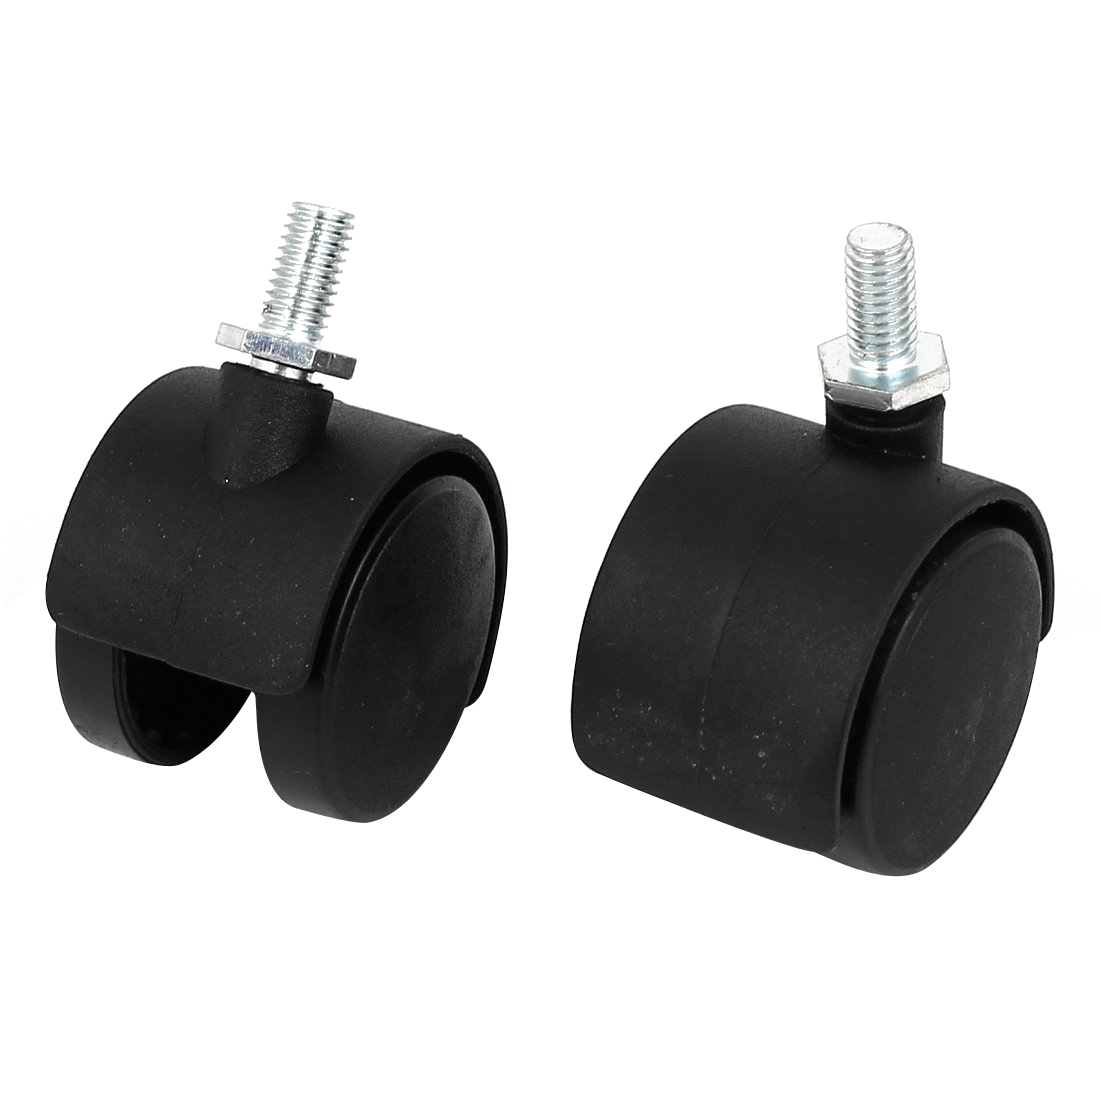 chair casters threaded stem oversized leather club dhdl 8mm 1 5 inch dia wheel swivel caster 2 pcs black in from home improvement on aliexpress com alibaba group